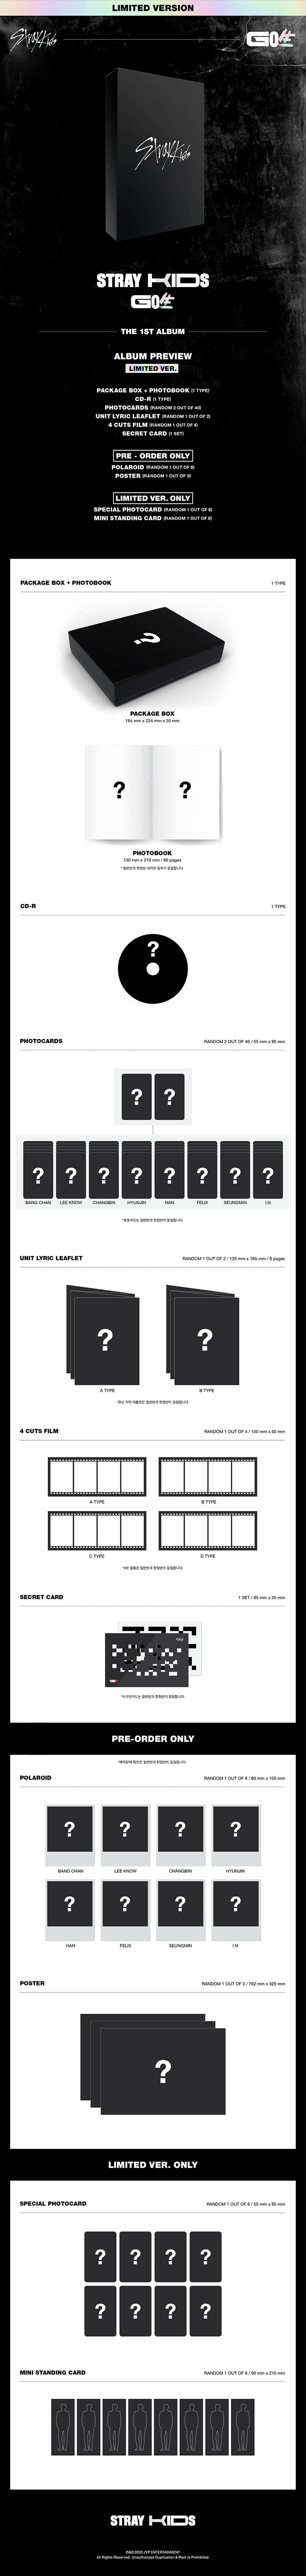 Stray Kids Go Live Limited Edition